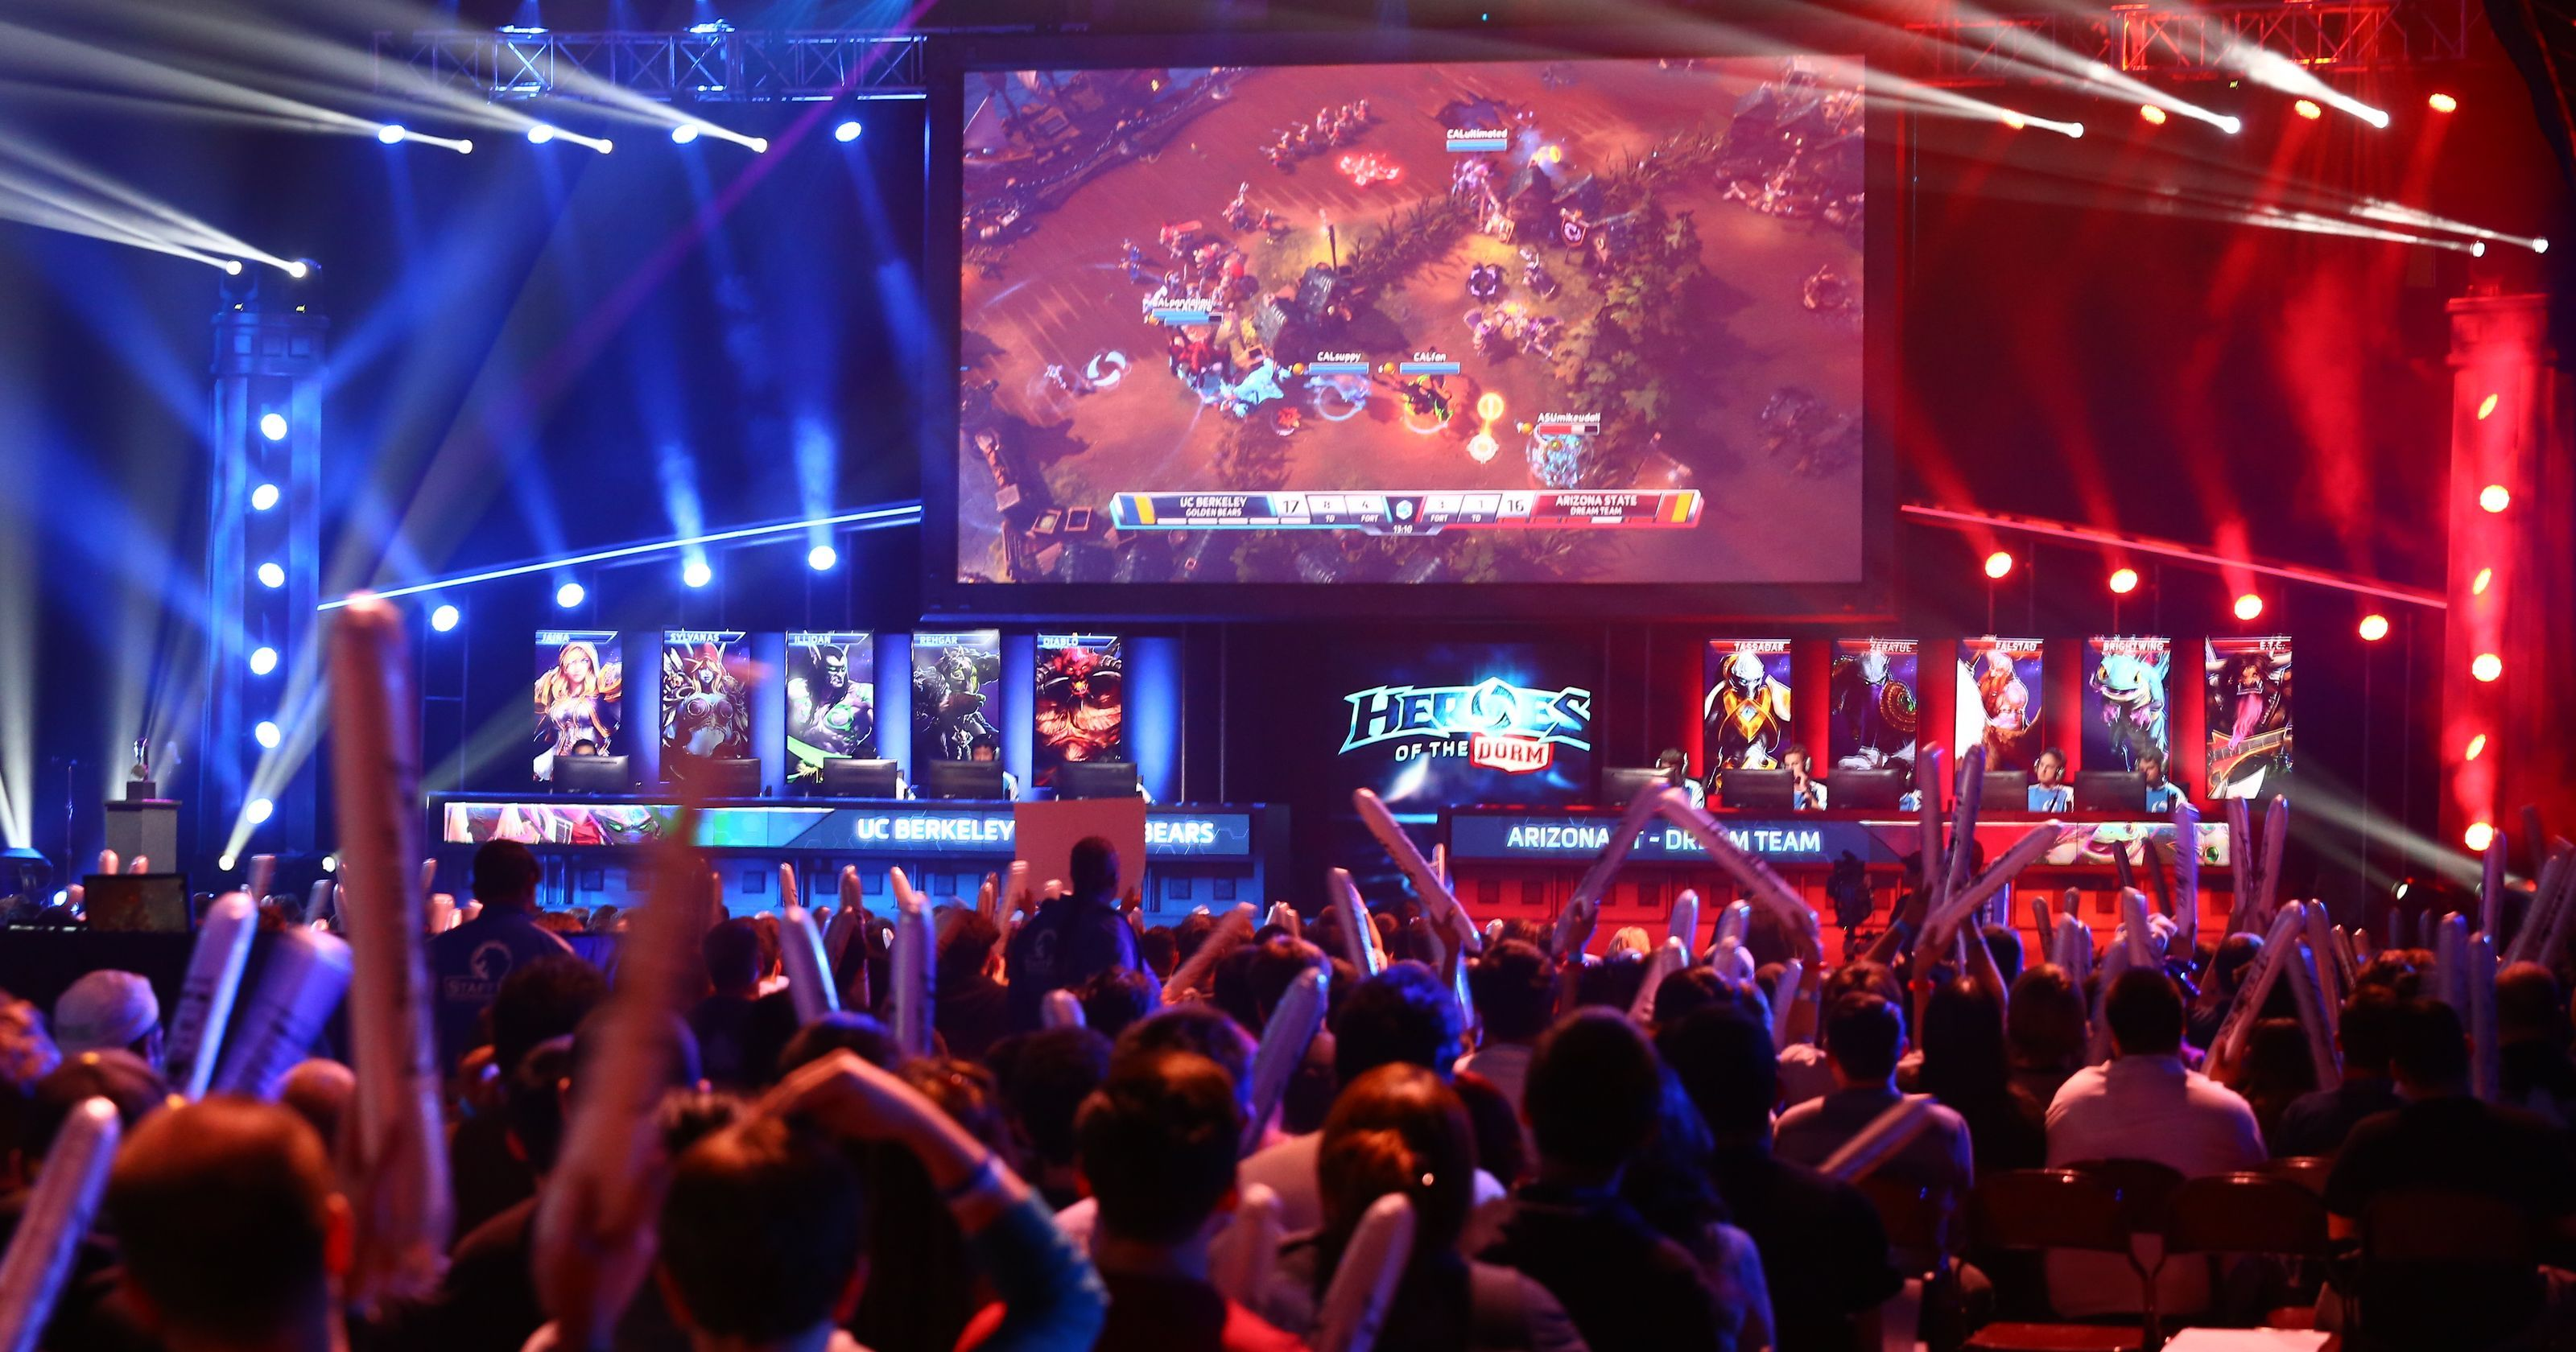 Big players enter $747M 'eSports' market #Tech #iNewsPhoto